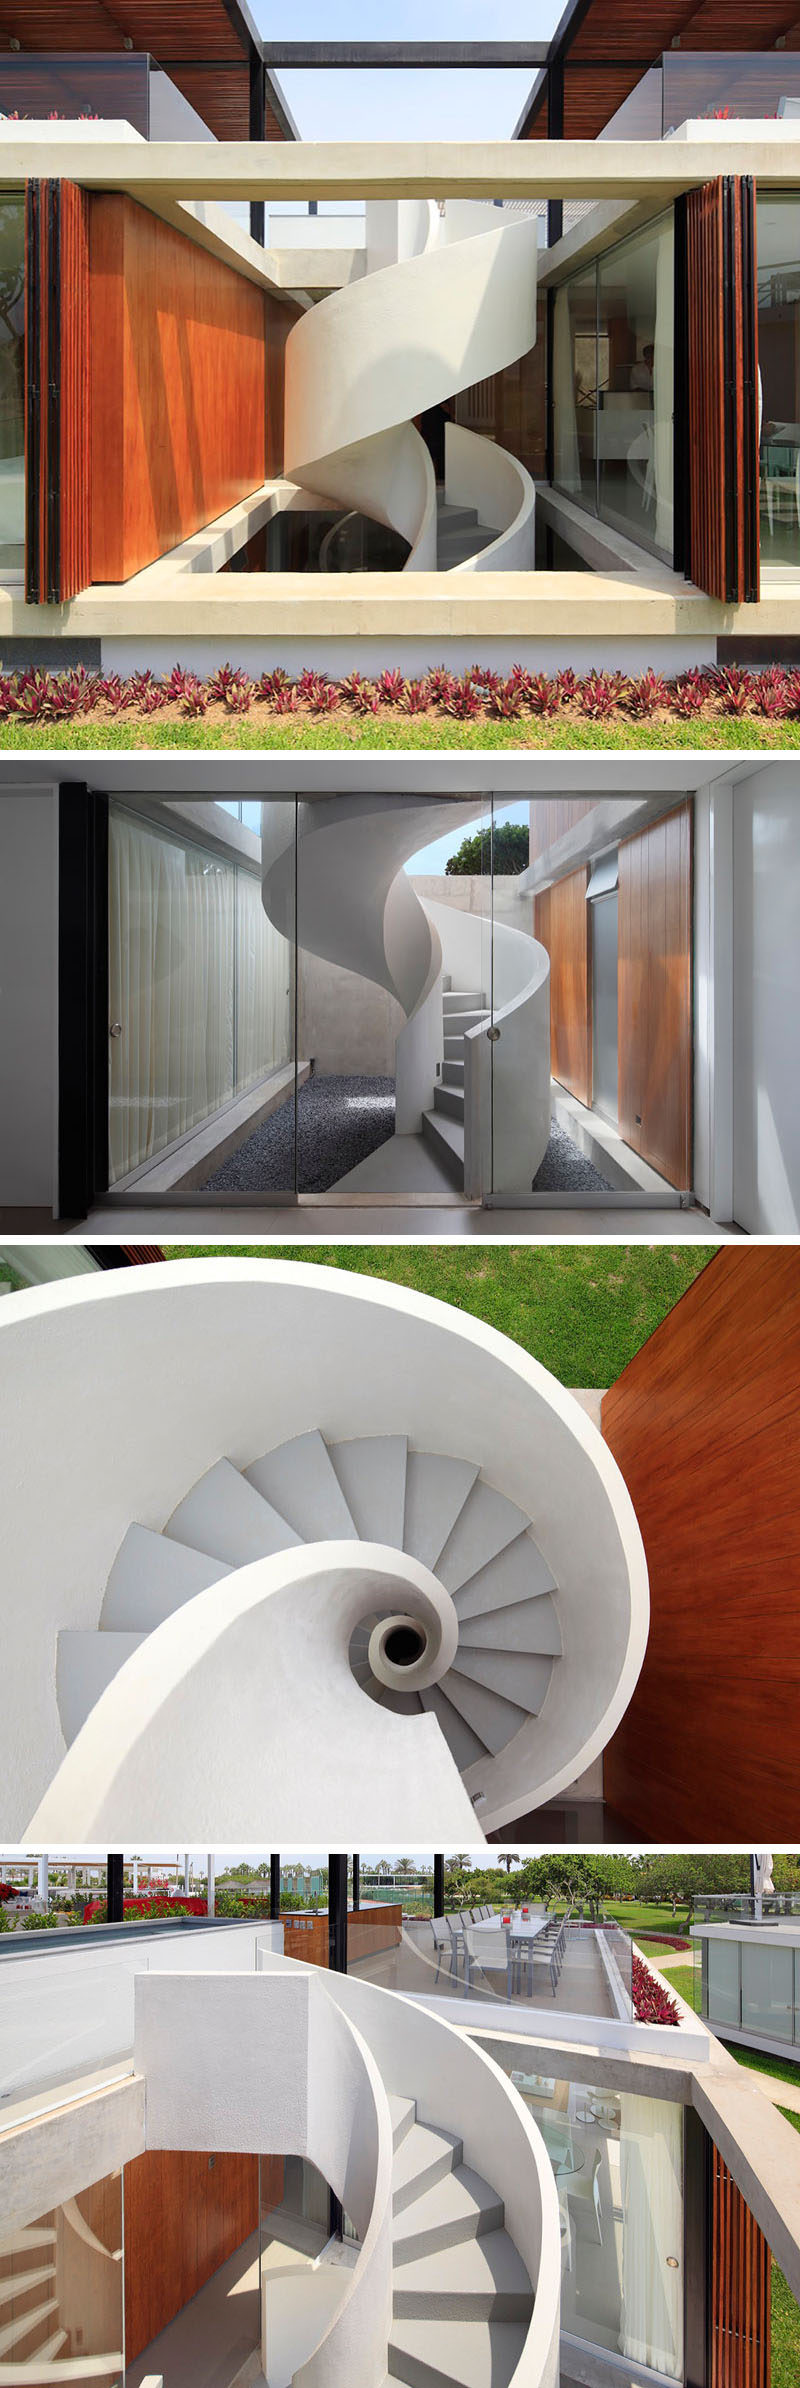 The white and grey outdoor spiral staircase of this modern house climbs all the way from the bottom level of the home up to the rooftop deck.